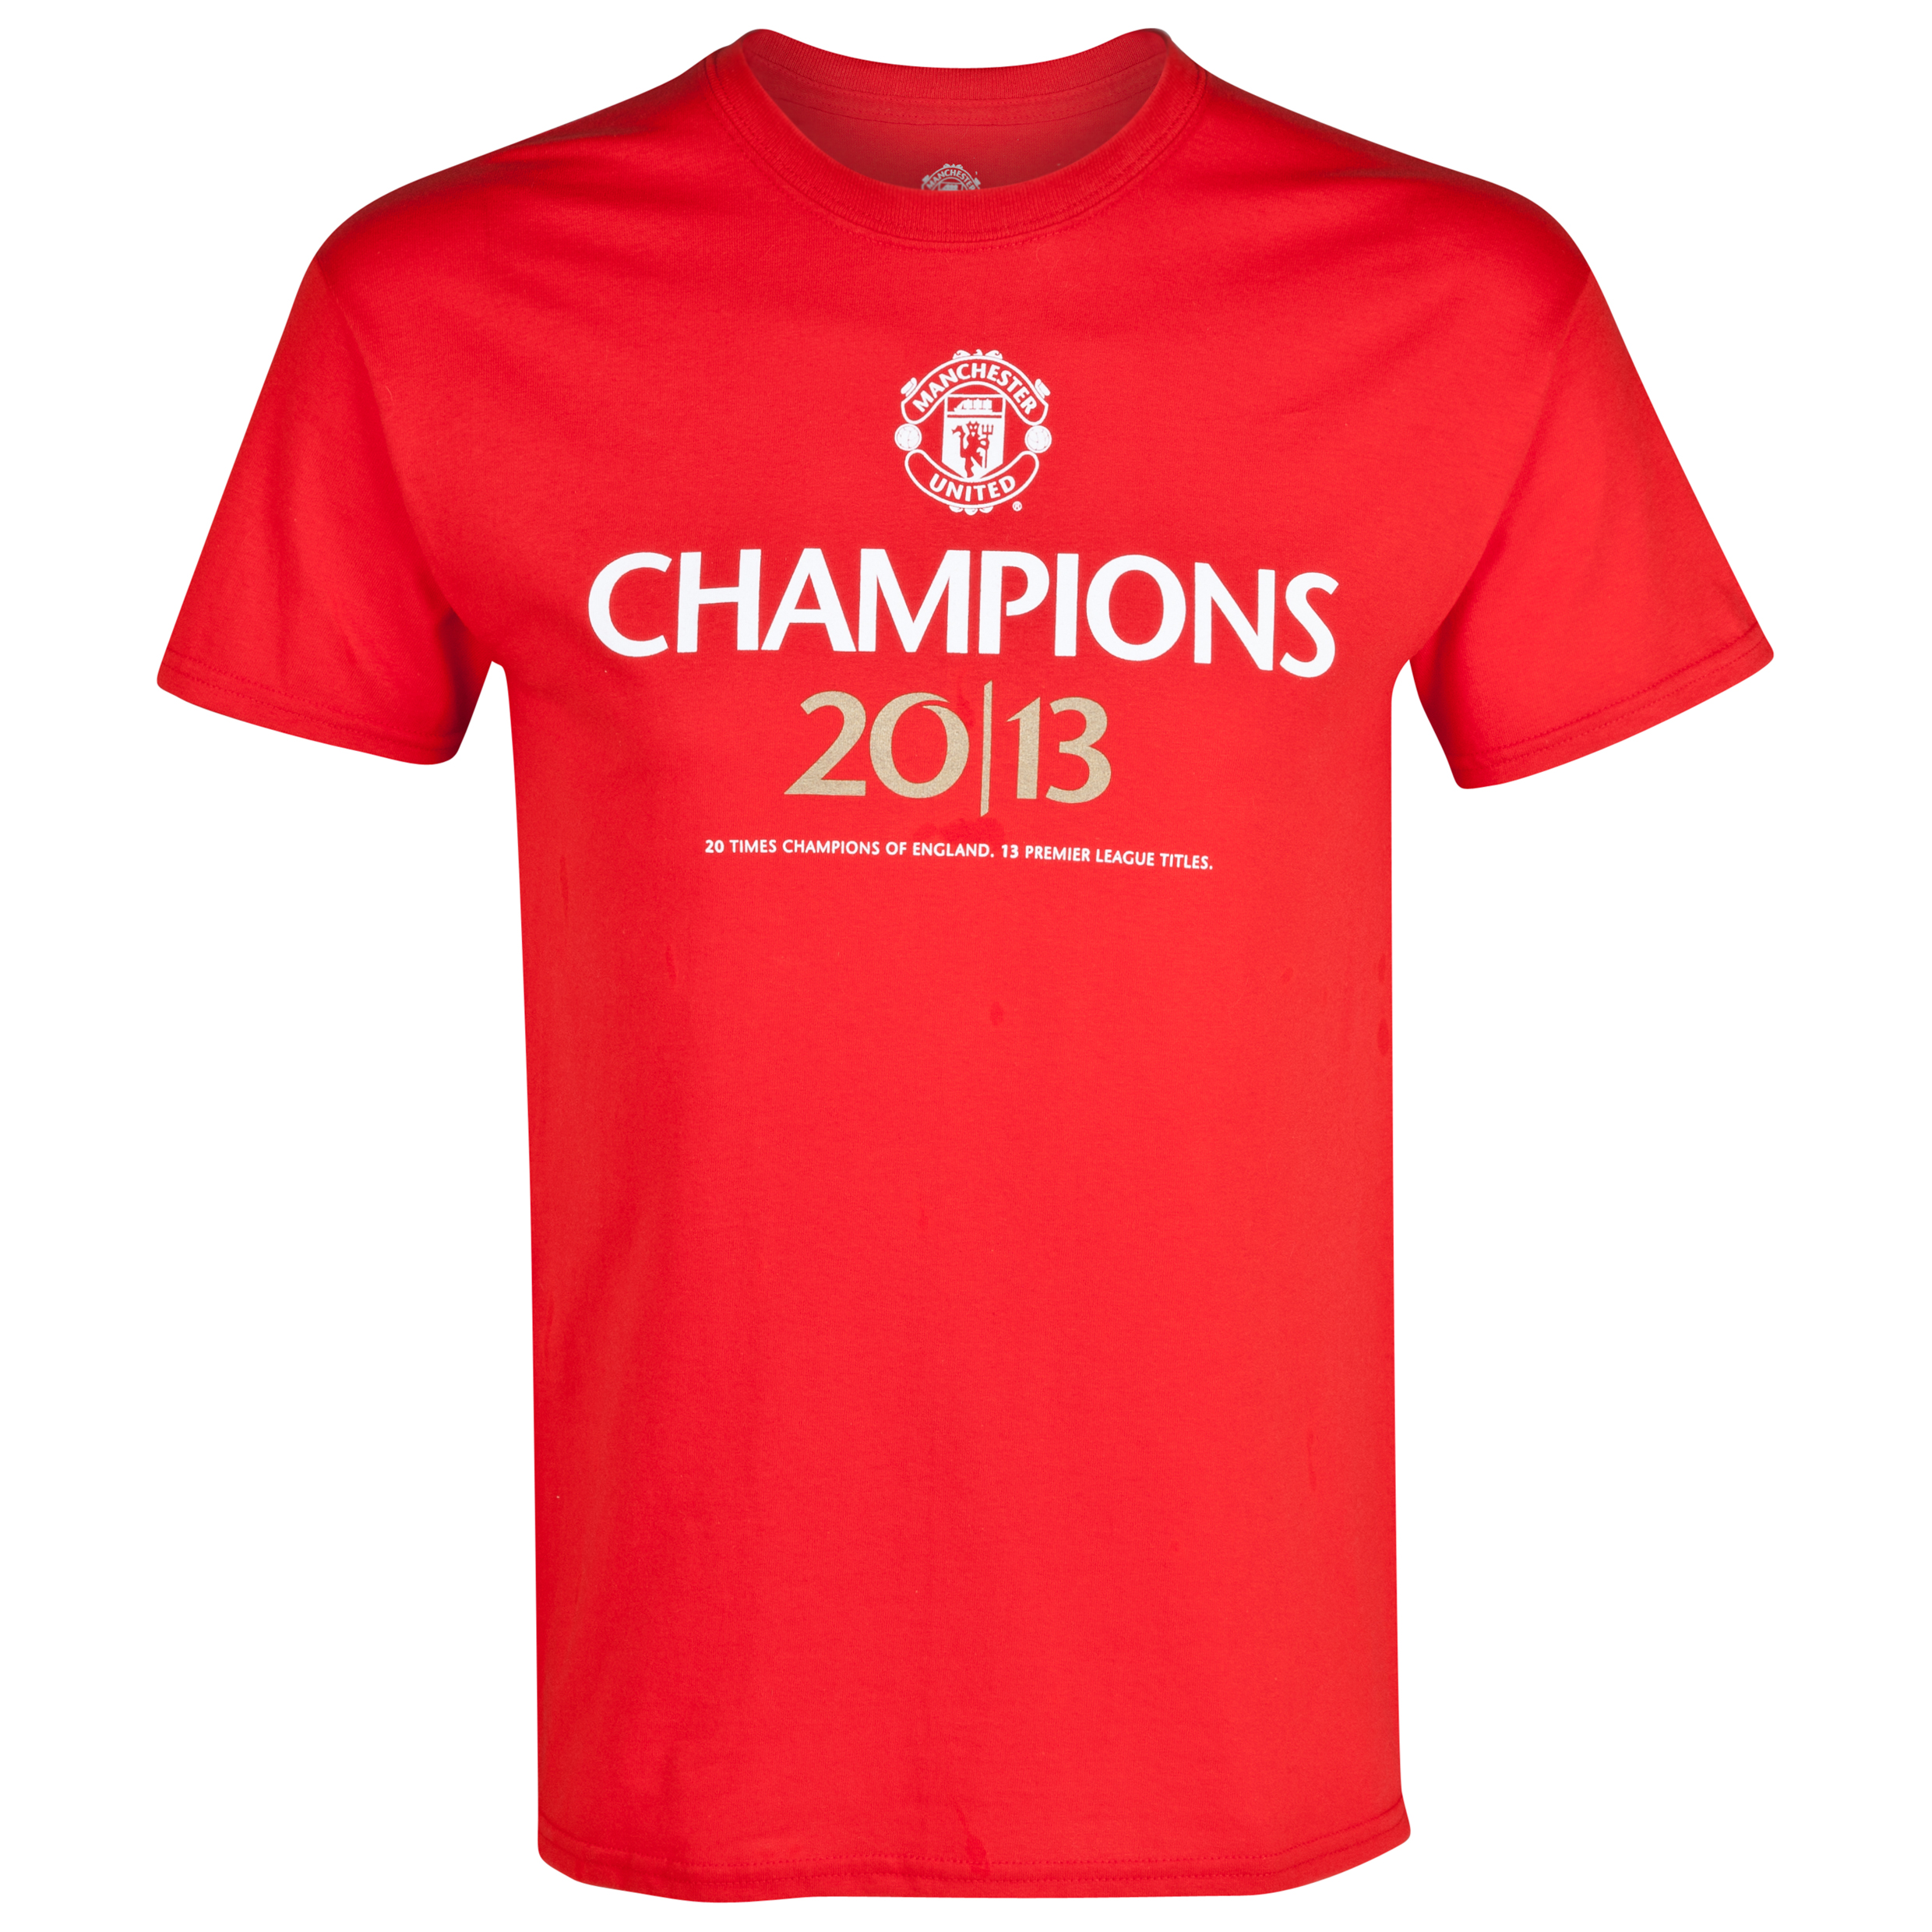 Manchester United Champions 20/13 T-Shirt - Kids Red